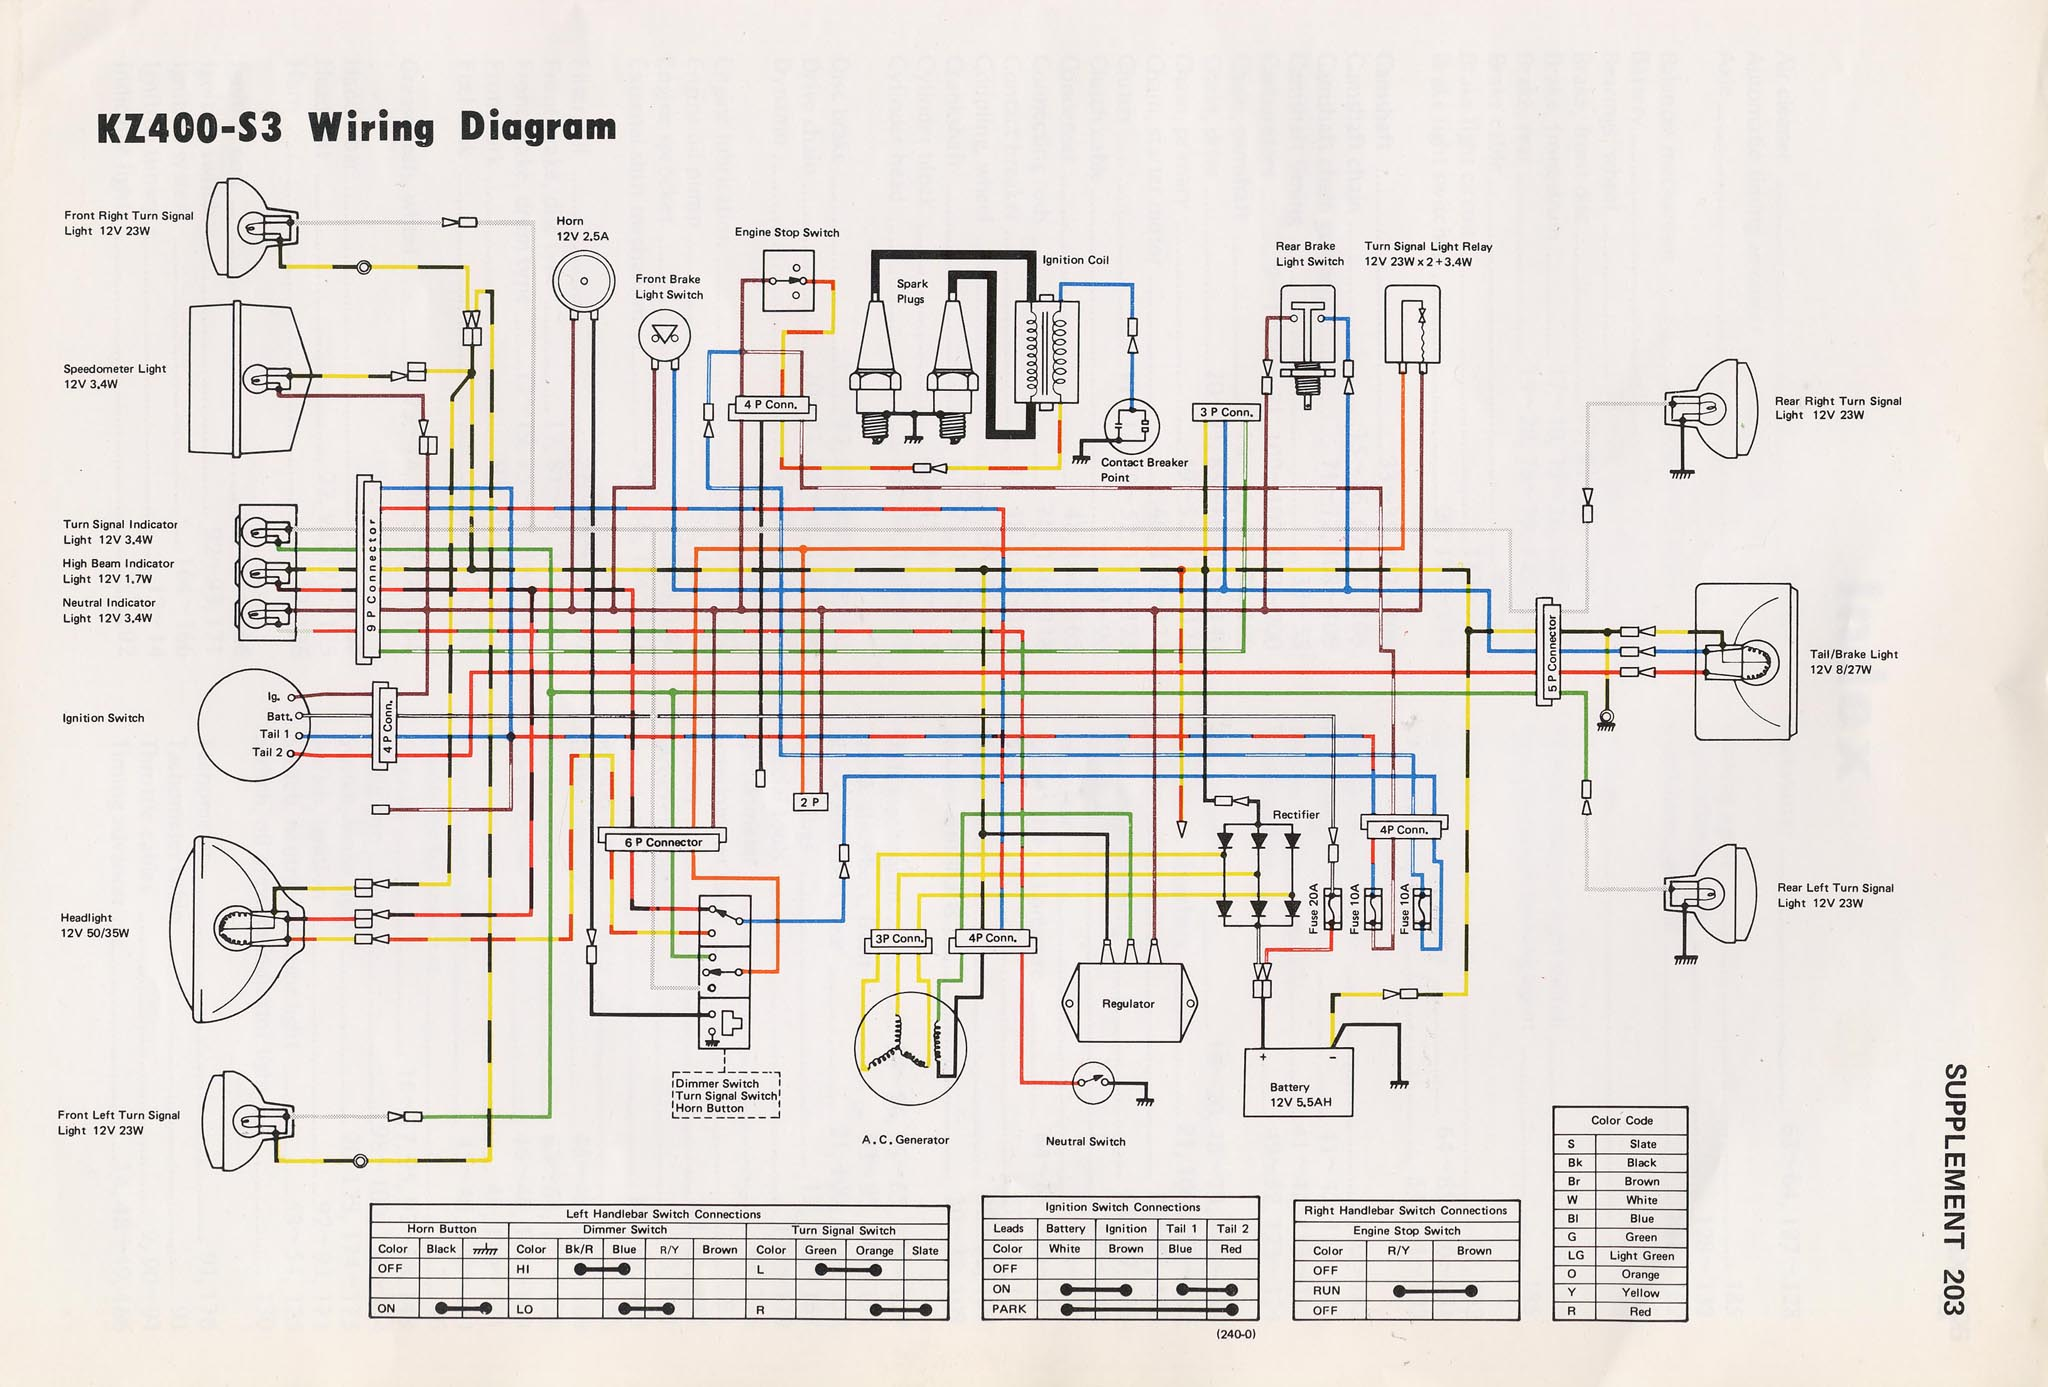 kz400 S3 index of techh tips bilder wiring diagrams 1980 kawasaki 440 ltd wiring diagram at bayanpartner.co